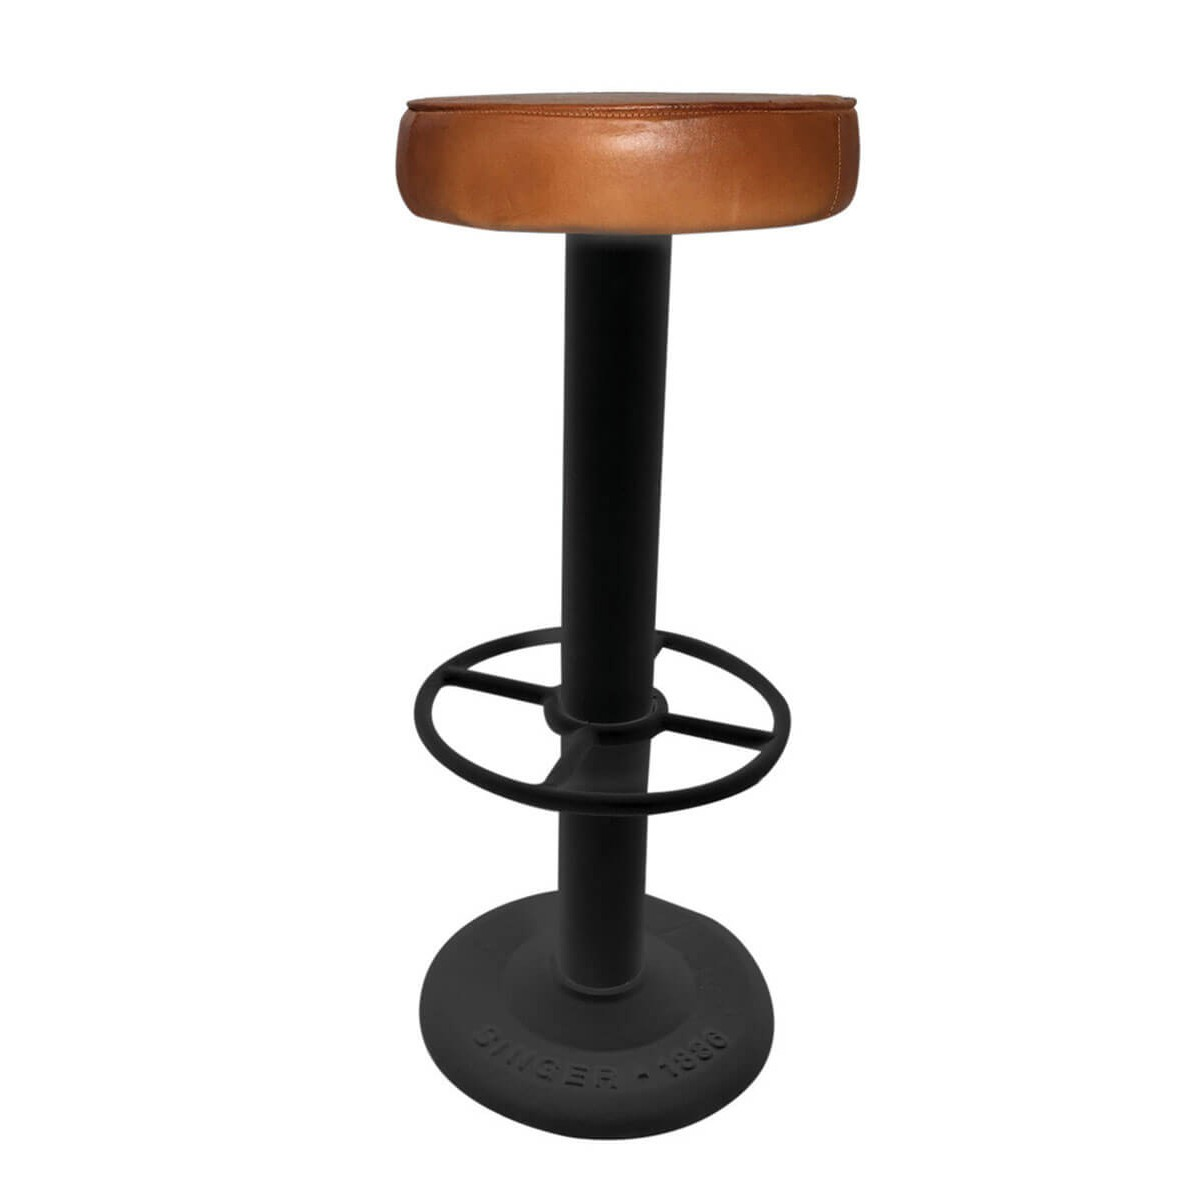 tabouret de bar cuir tabouret de bar design en cuir marron milana tabouret bar en acier assise. Black Bedroom Furniture Sets. Home Design Ideas